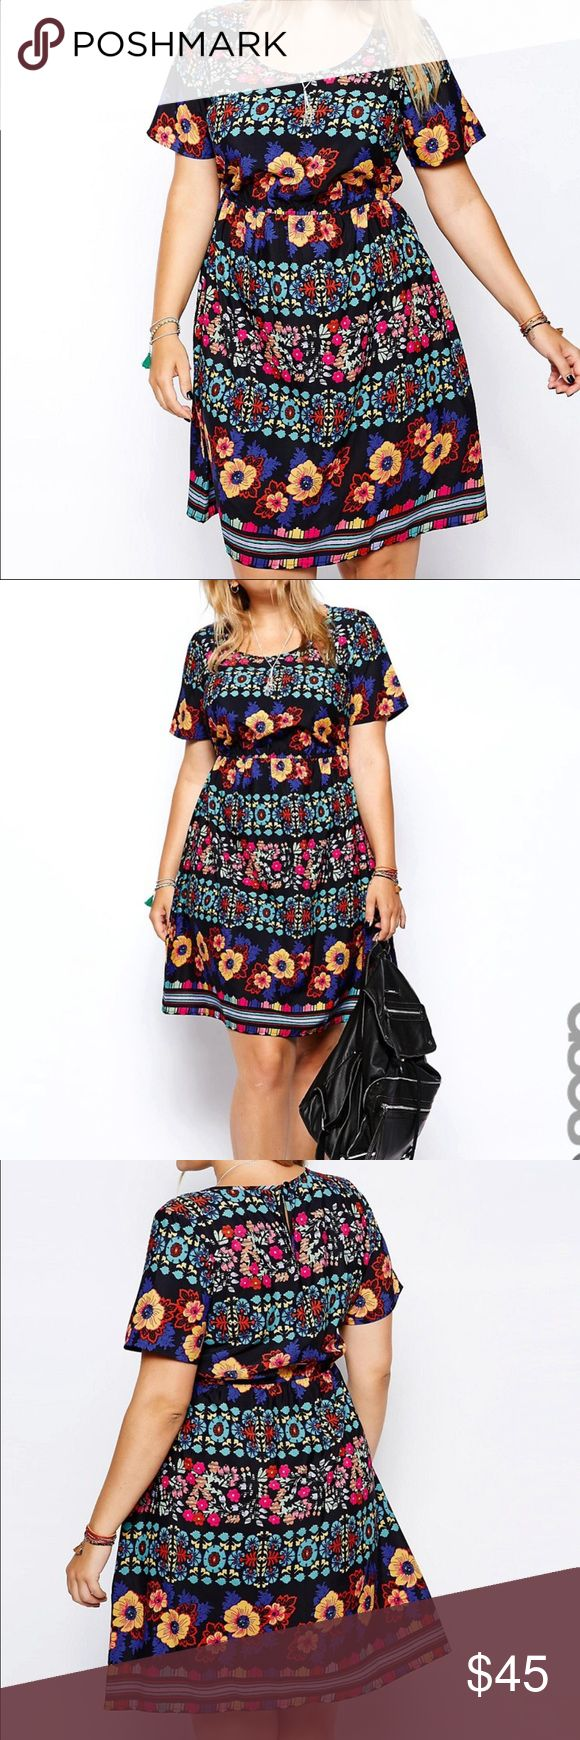 Asos curve dress US size 20 but would also fit a size 22. Great condition. No trades. Price is firm. ASOS Curve Dresses